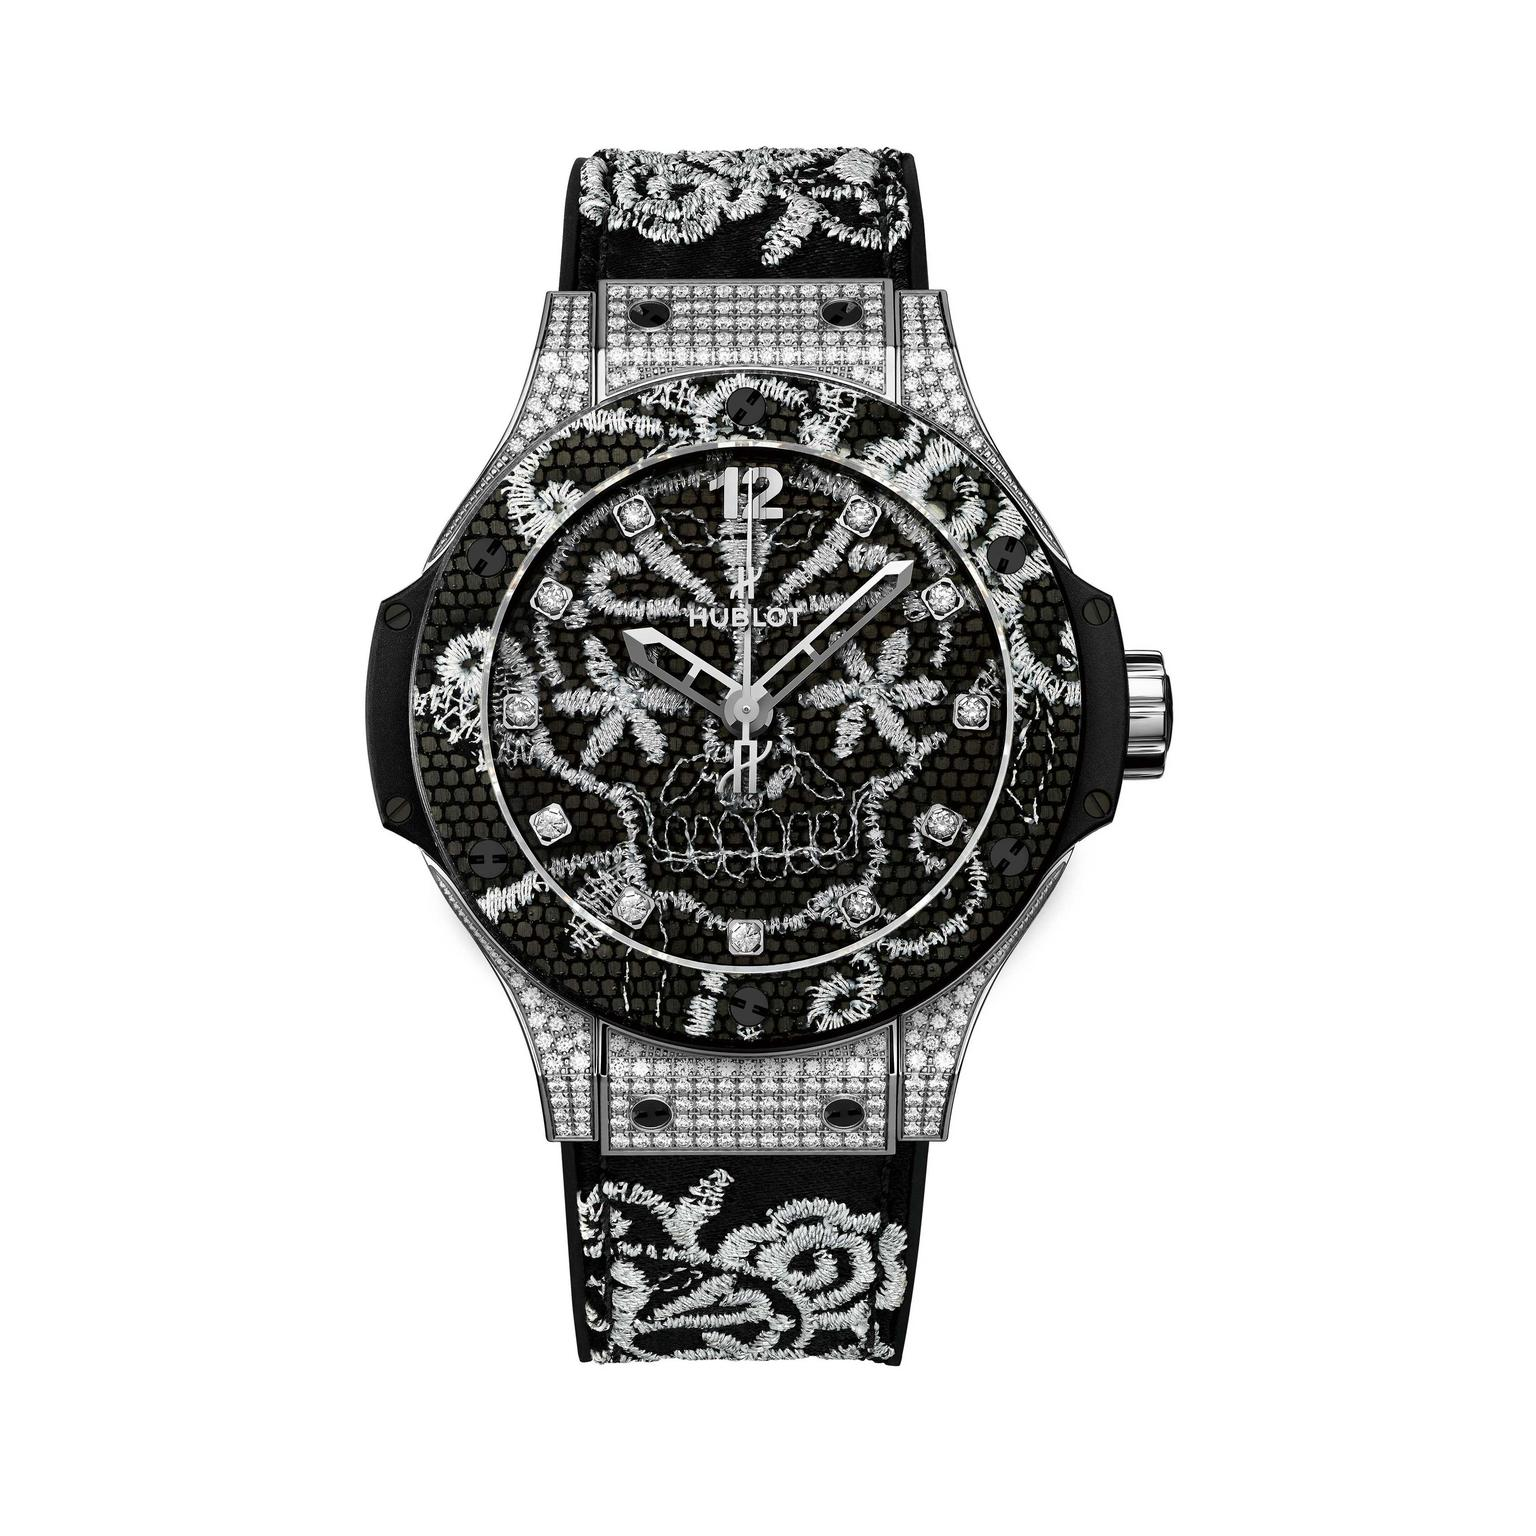 Hublot-black-and-silver-lace-watch